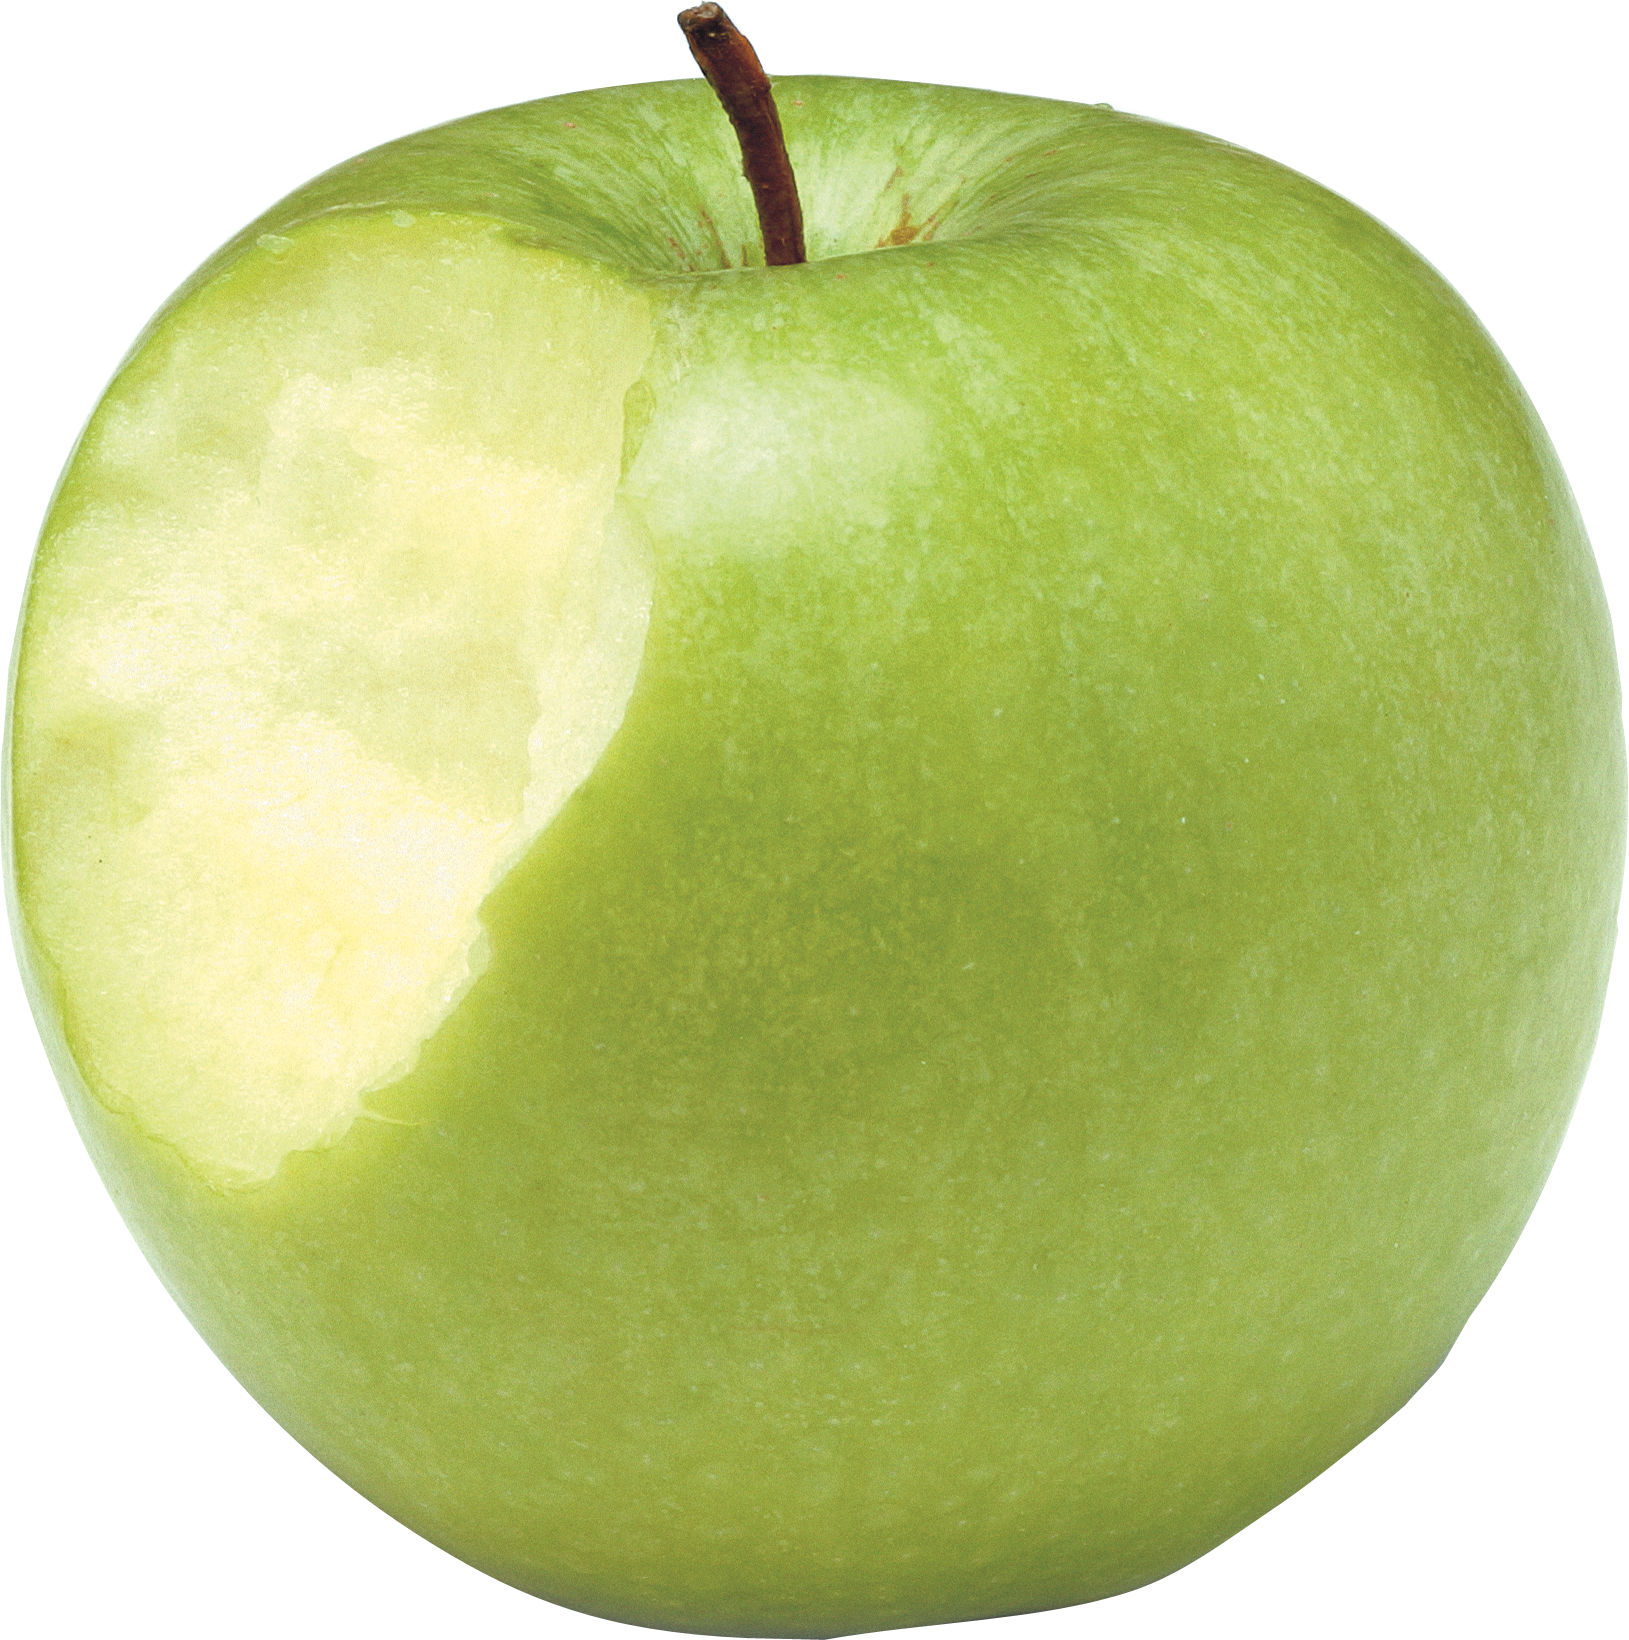 Apple bite clipart png banner royalty free download Apple bitten out PNG Image - PurePNG | Free transparent CC0 PNG ... banner royalty free download